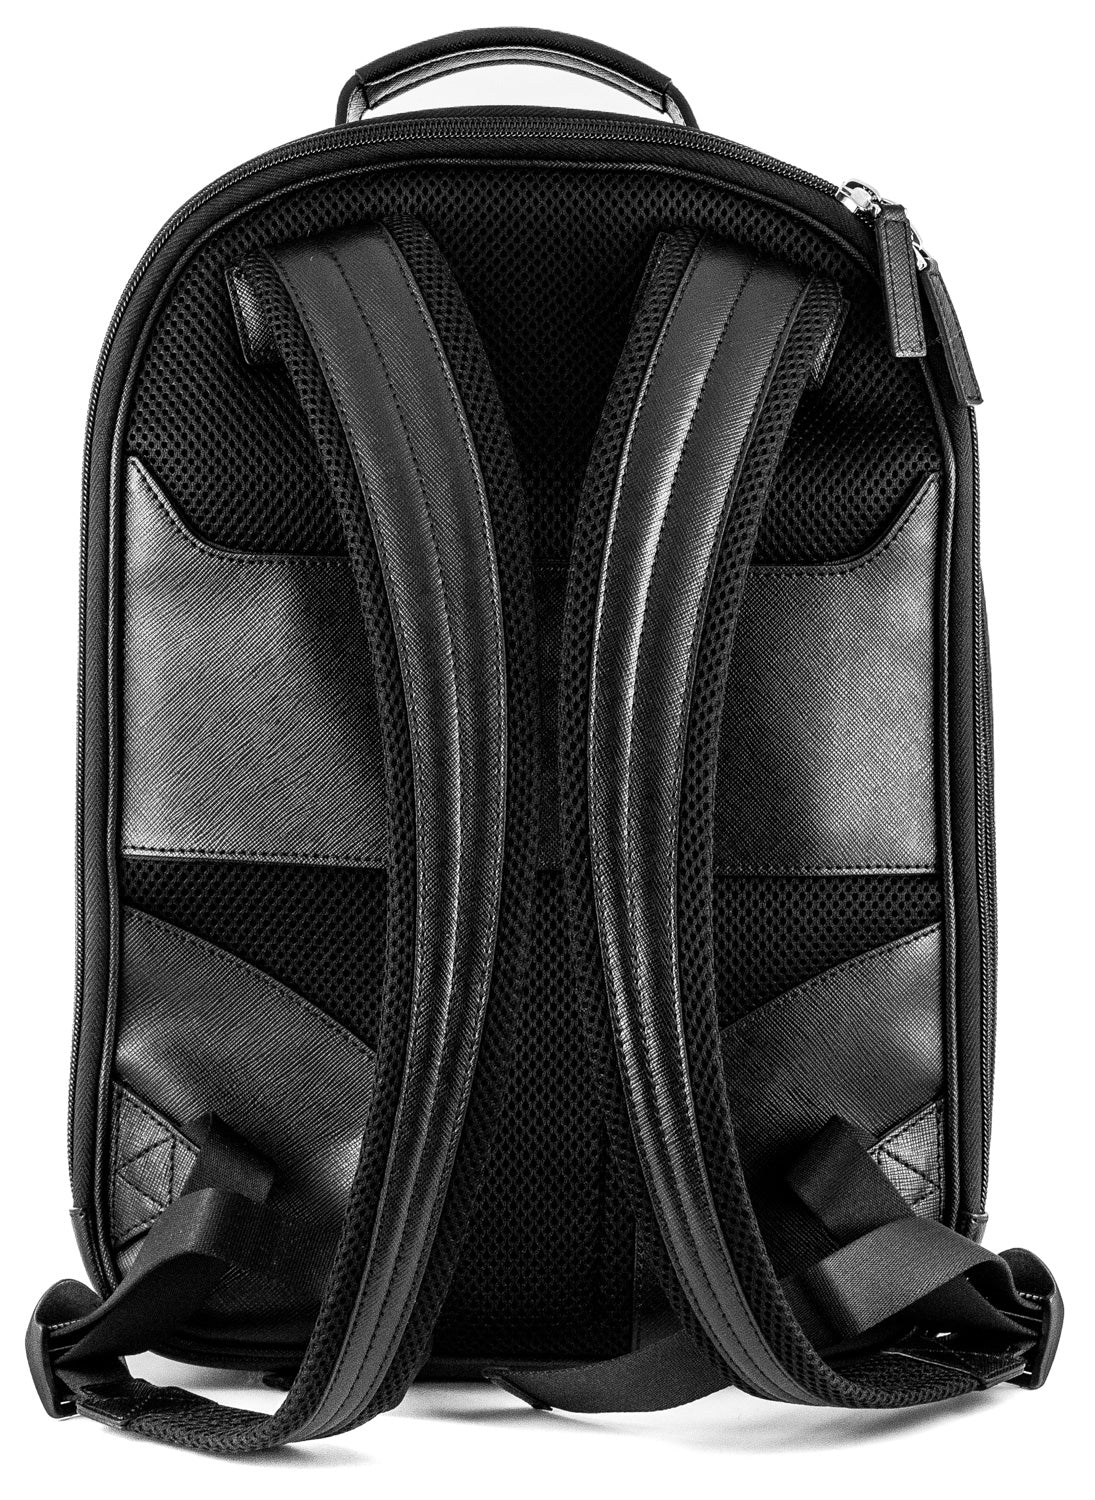 Montblanc Sartorial Black Leather Small Backpack 114584